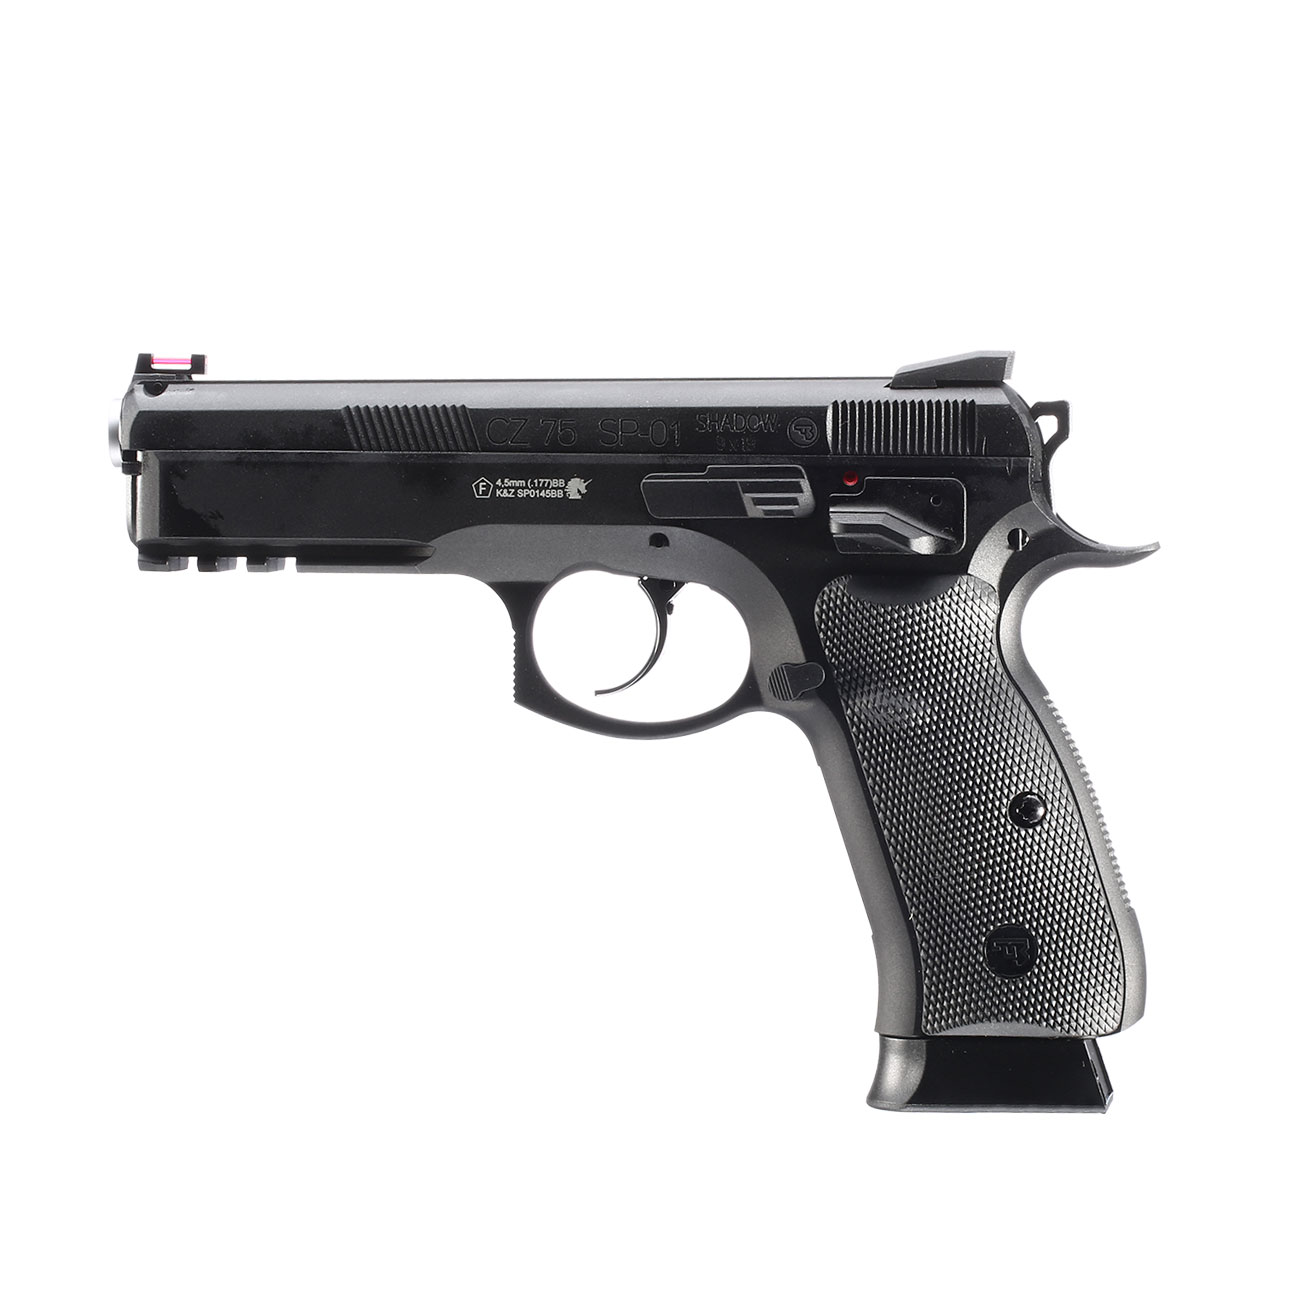 ASG CZ 75 SP-01 Shadow CO2-Luftpistole Kal. 4,5mm BB schwarz Vollmetall Blowback 0